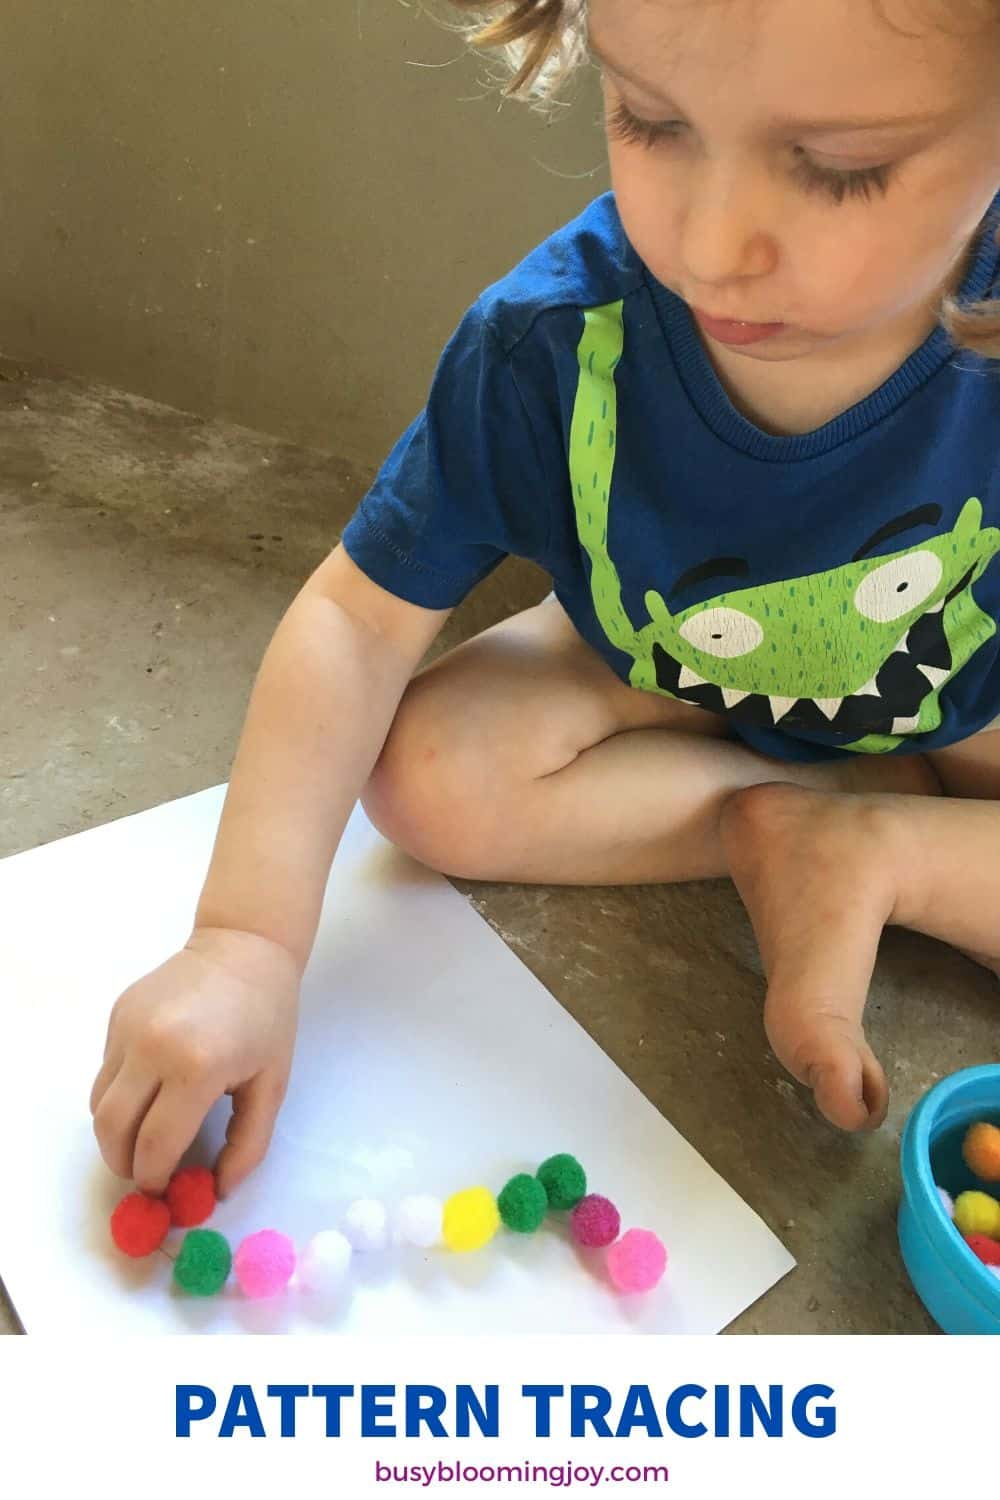 pompom patterns for an easy toddler activity at home